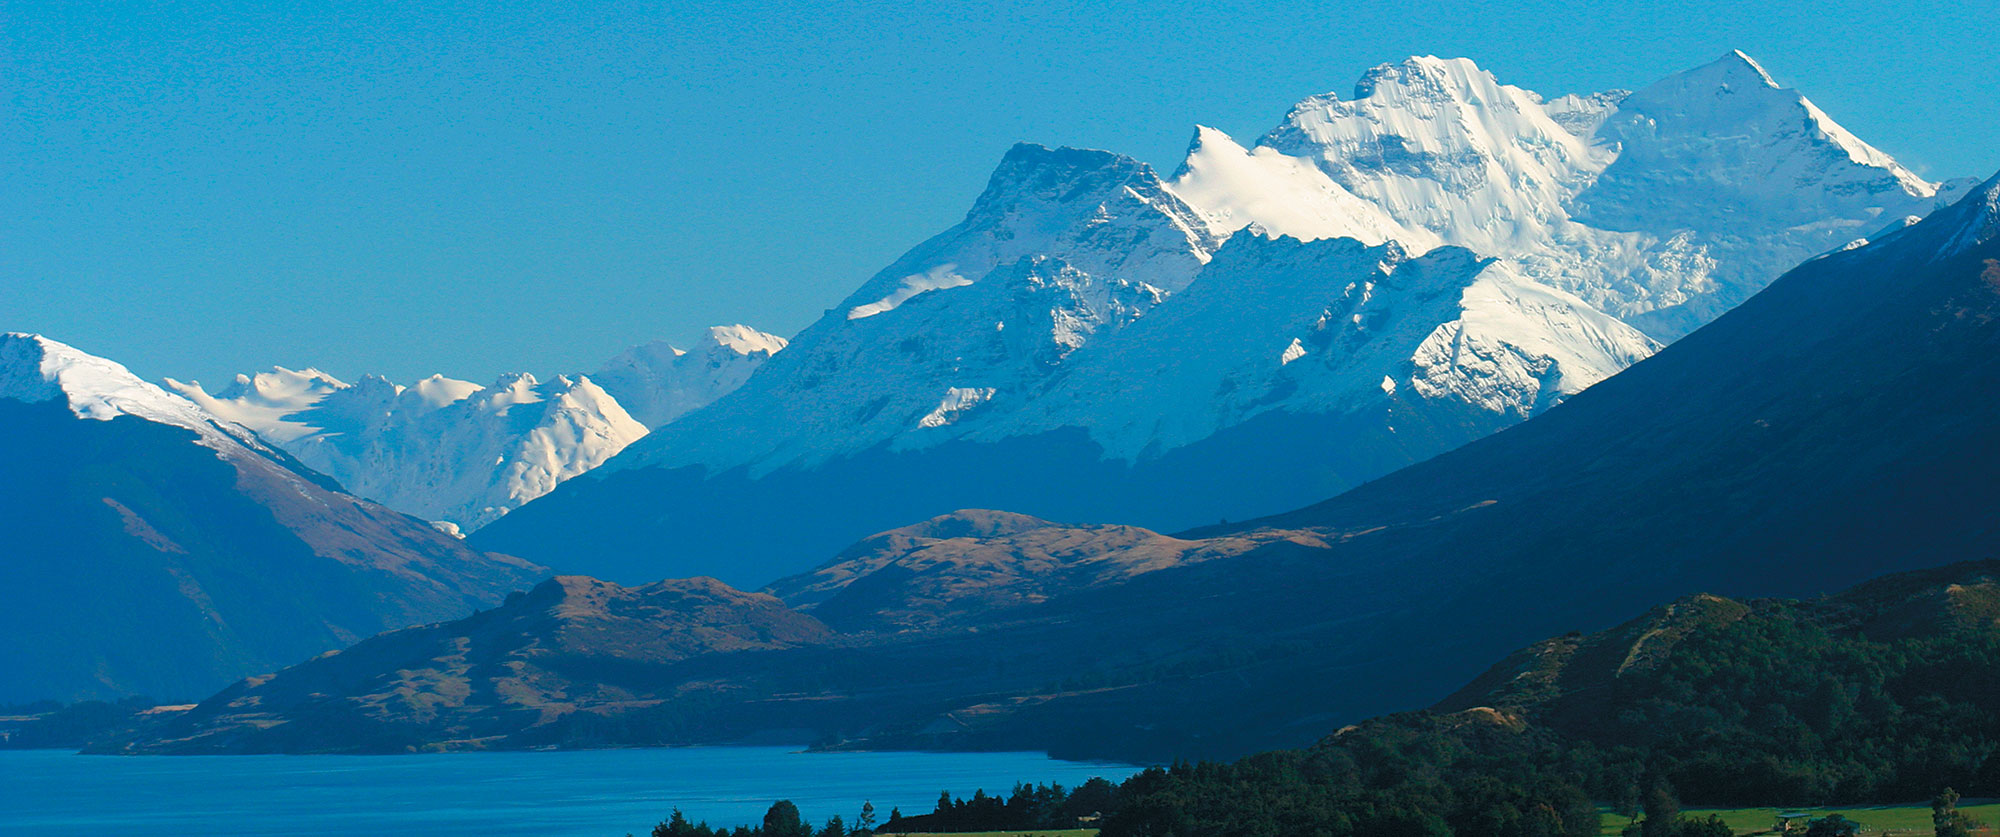 New Zealand Honeymoon Adventure - New Zealand Southern Alps drive